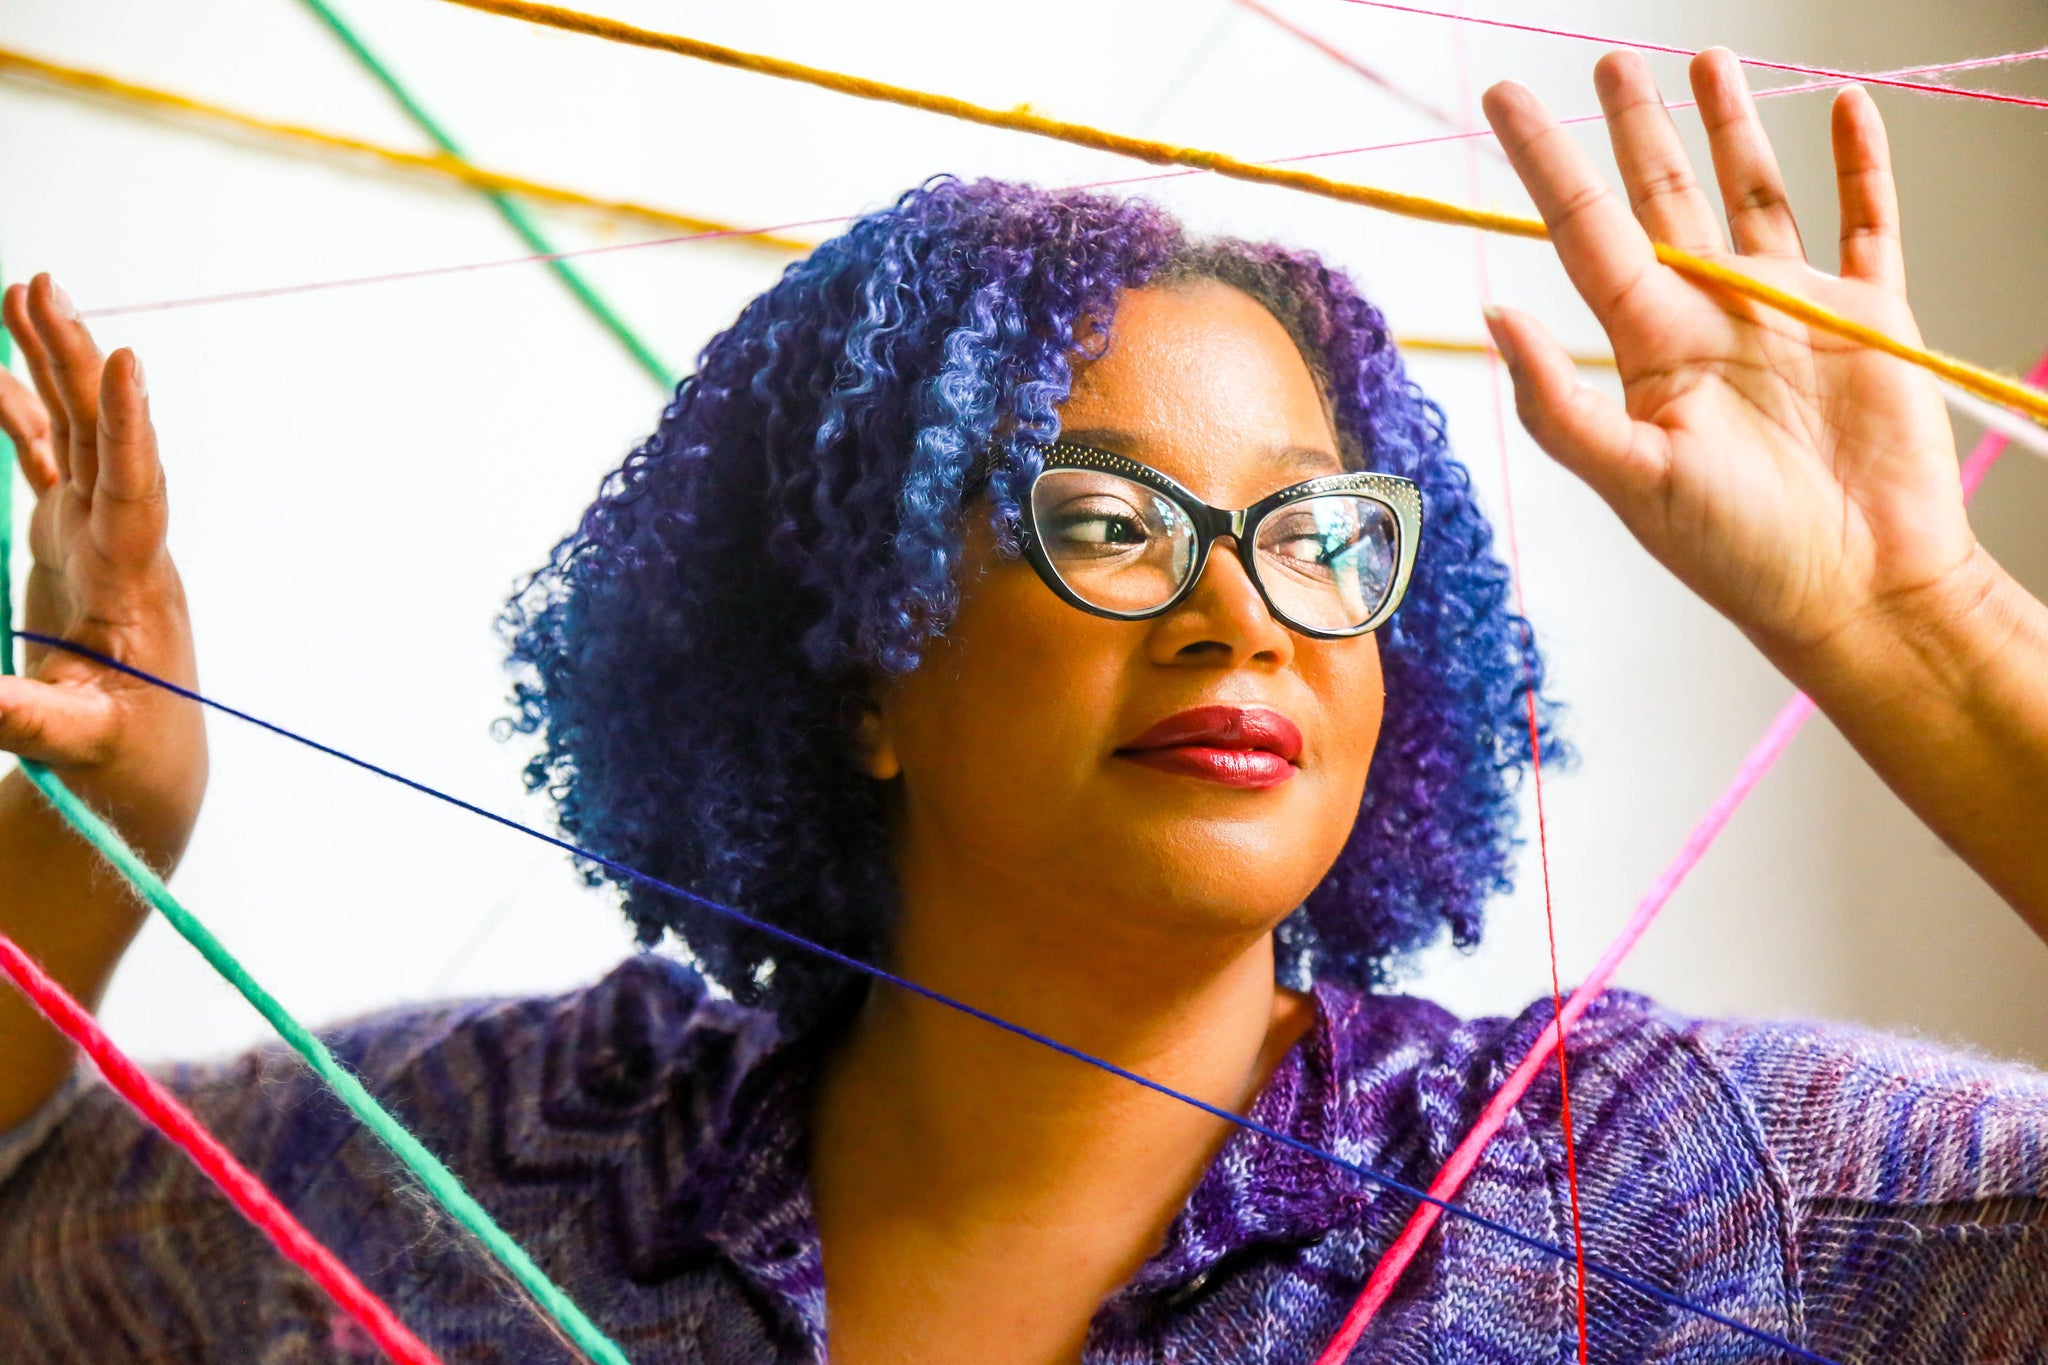 Black woman with blue and purple curls peeking through a web of colourful yarn